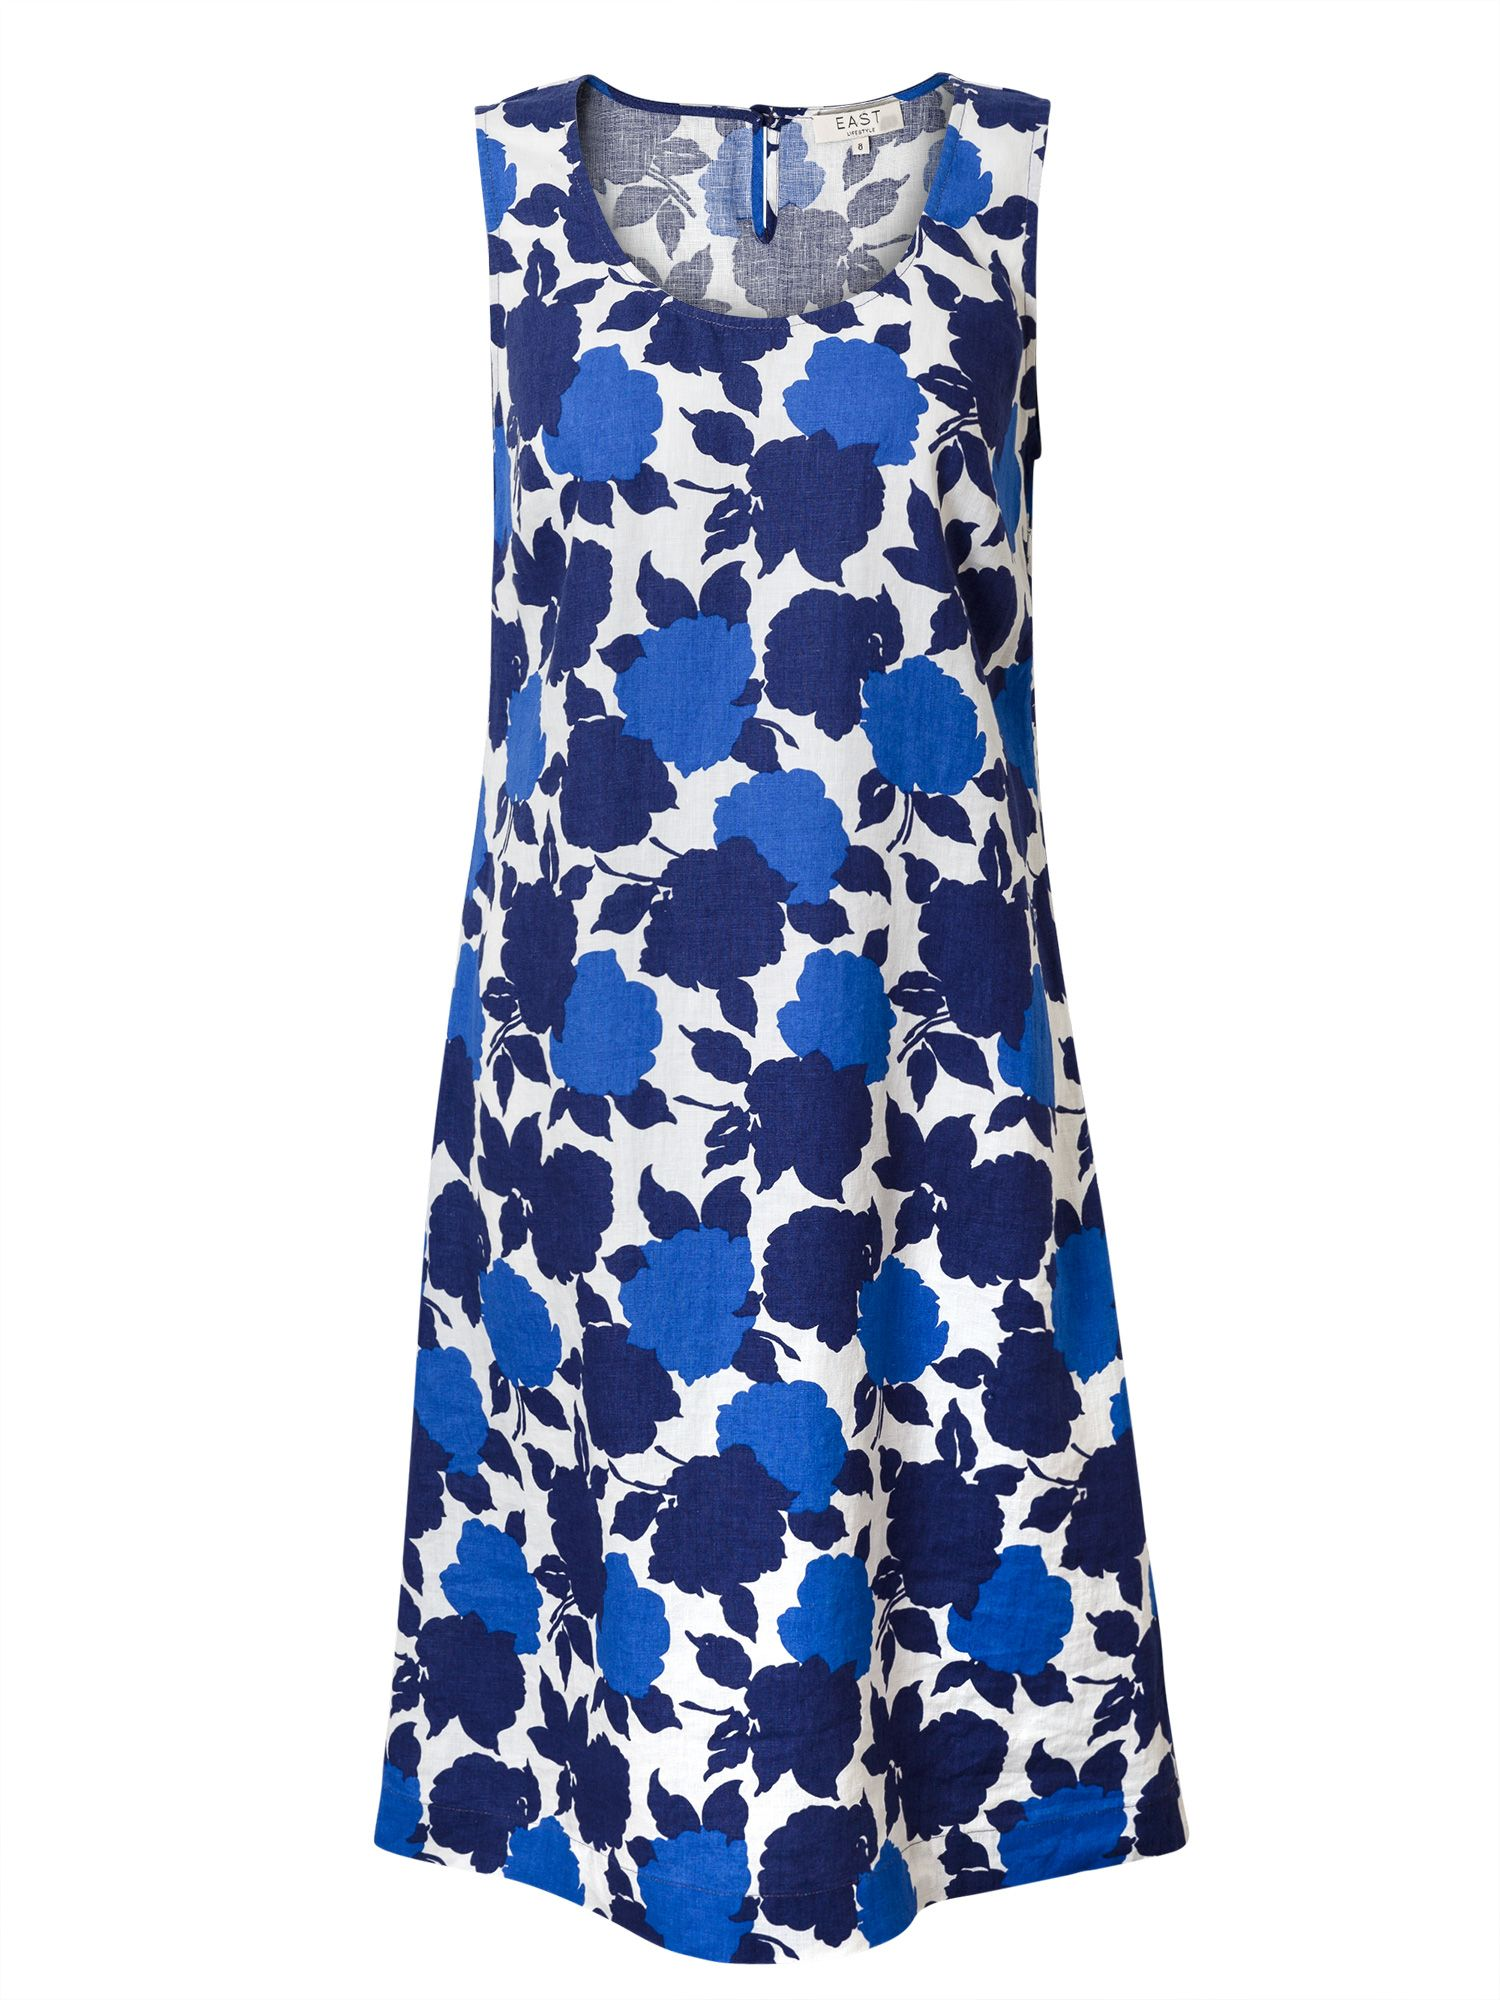 East Linen Sicily Print Dress, Blue